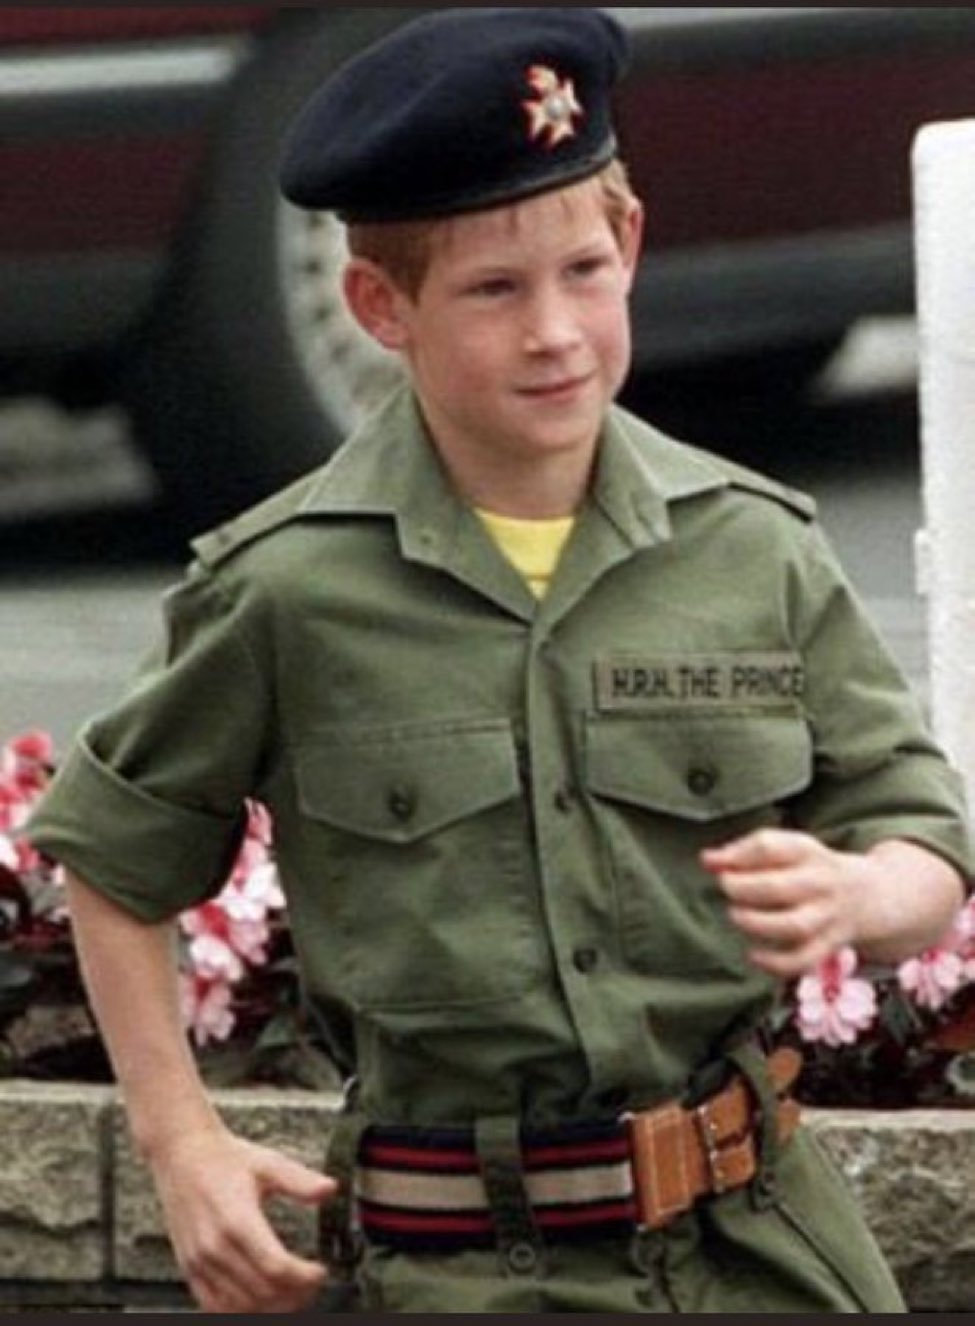 Prince Harry turns 37 years old today